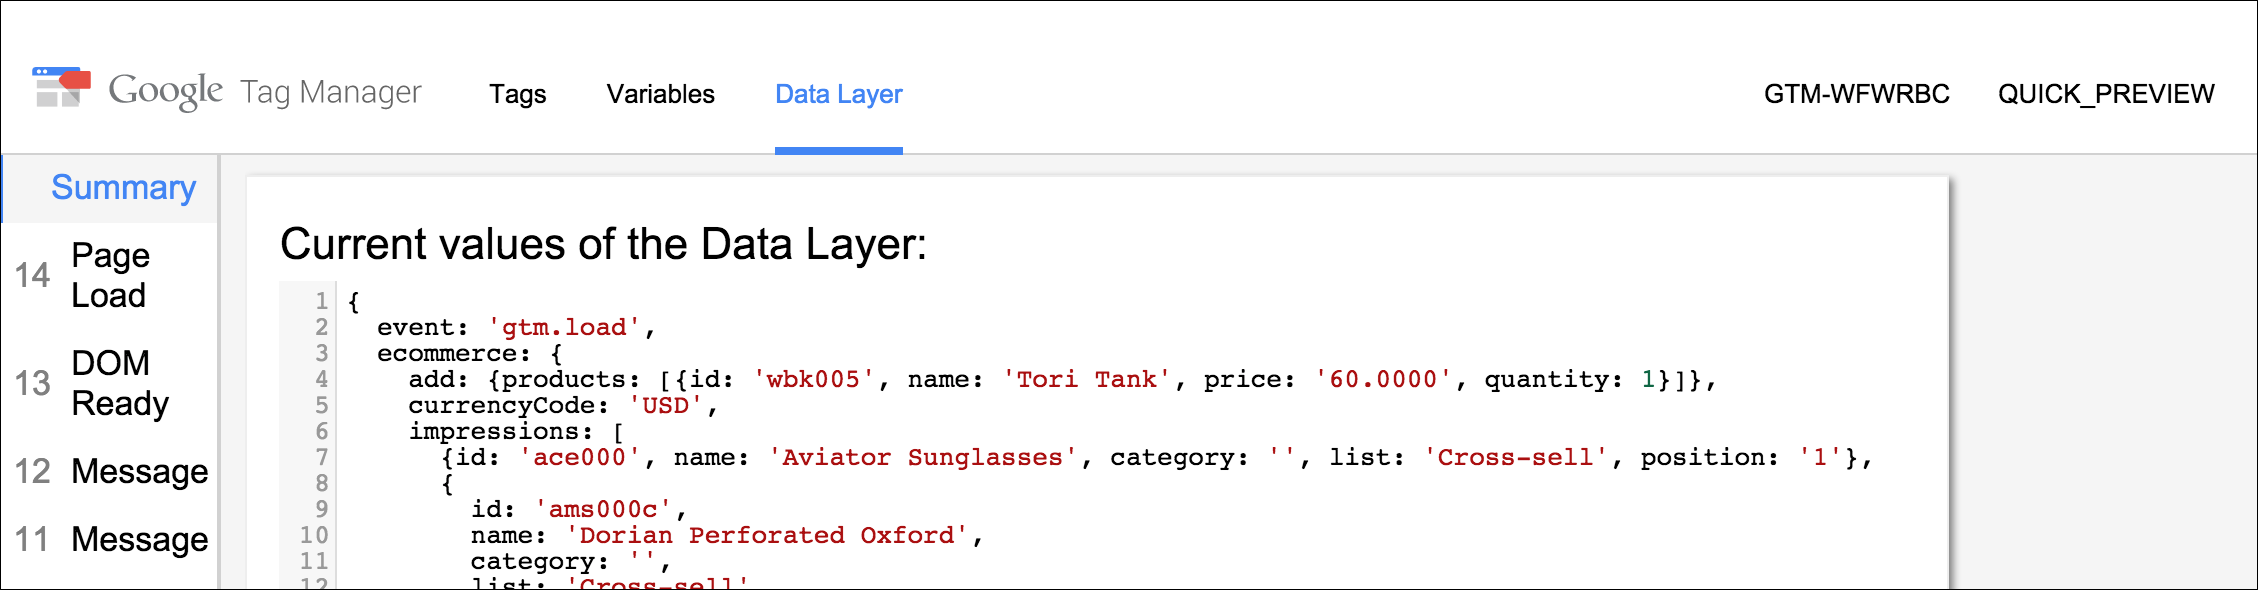 Google Tag Manager - data layer